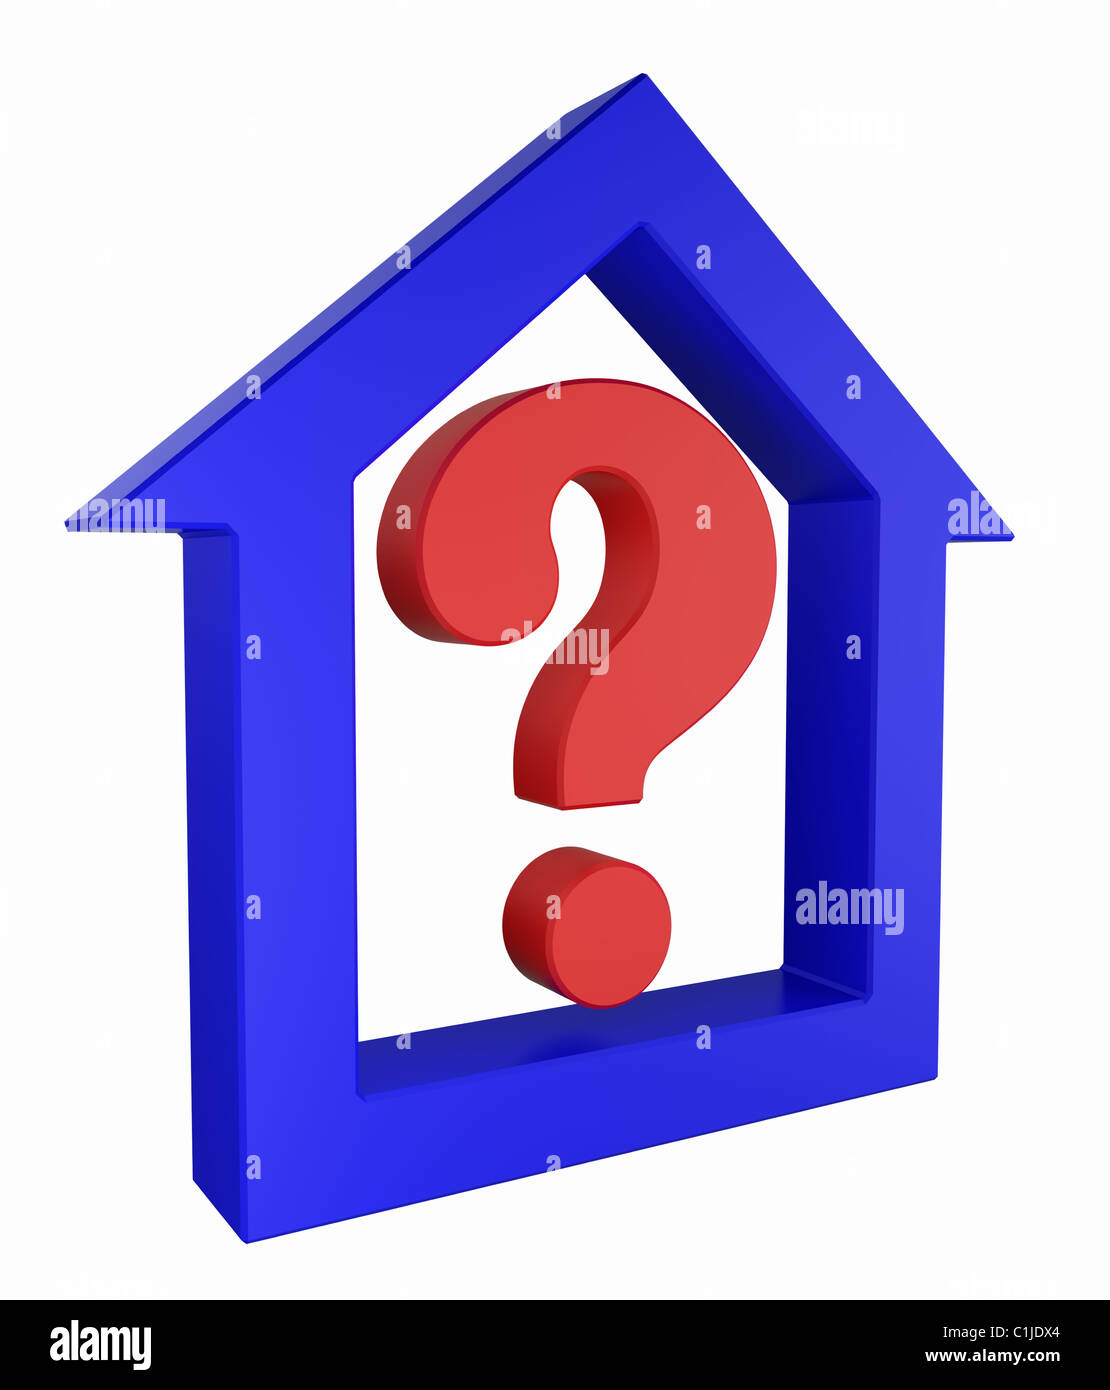 House and question sign icon - Stock Image